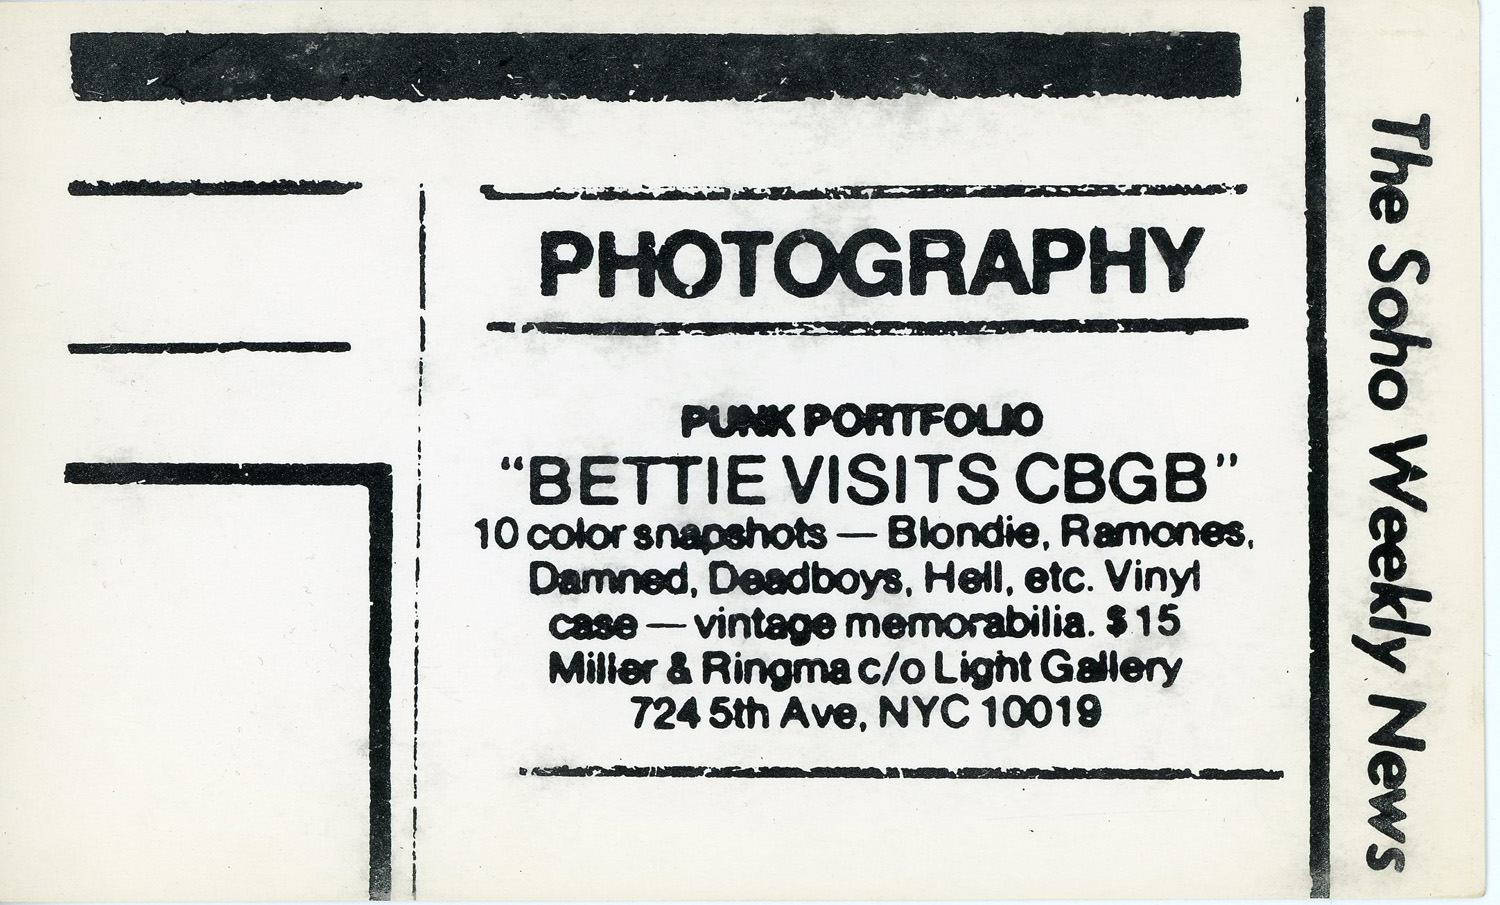 LIGHT Gallery, Miller & Ringma, Bettie Visits CBGB, Promotional Card, 1978